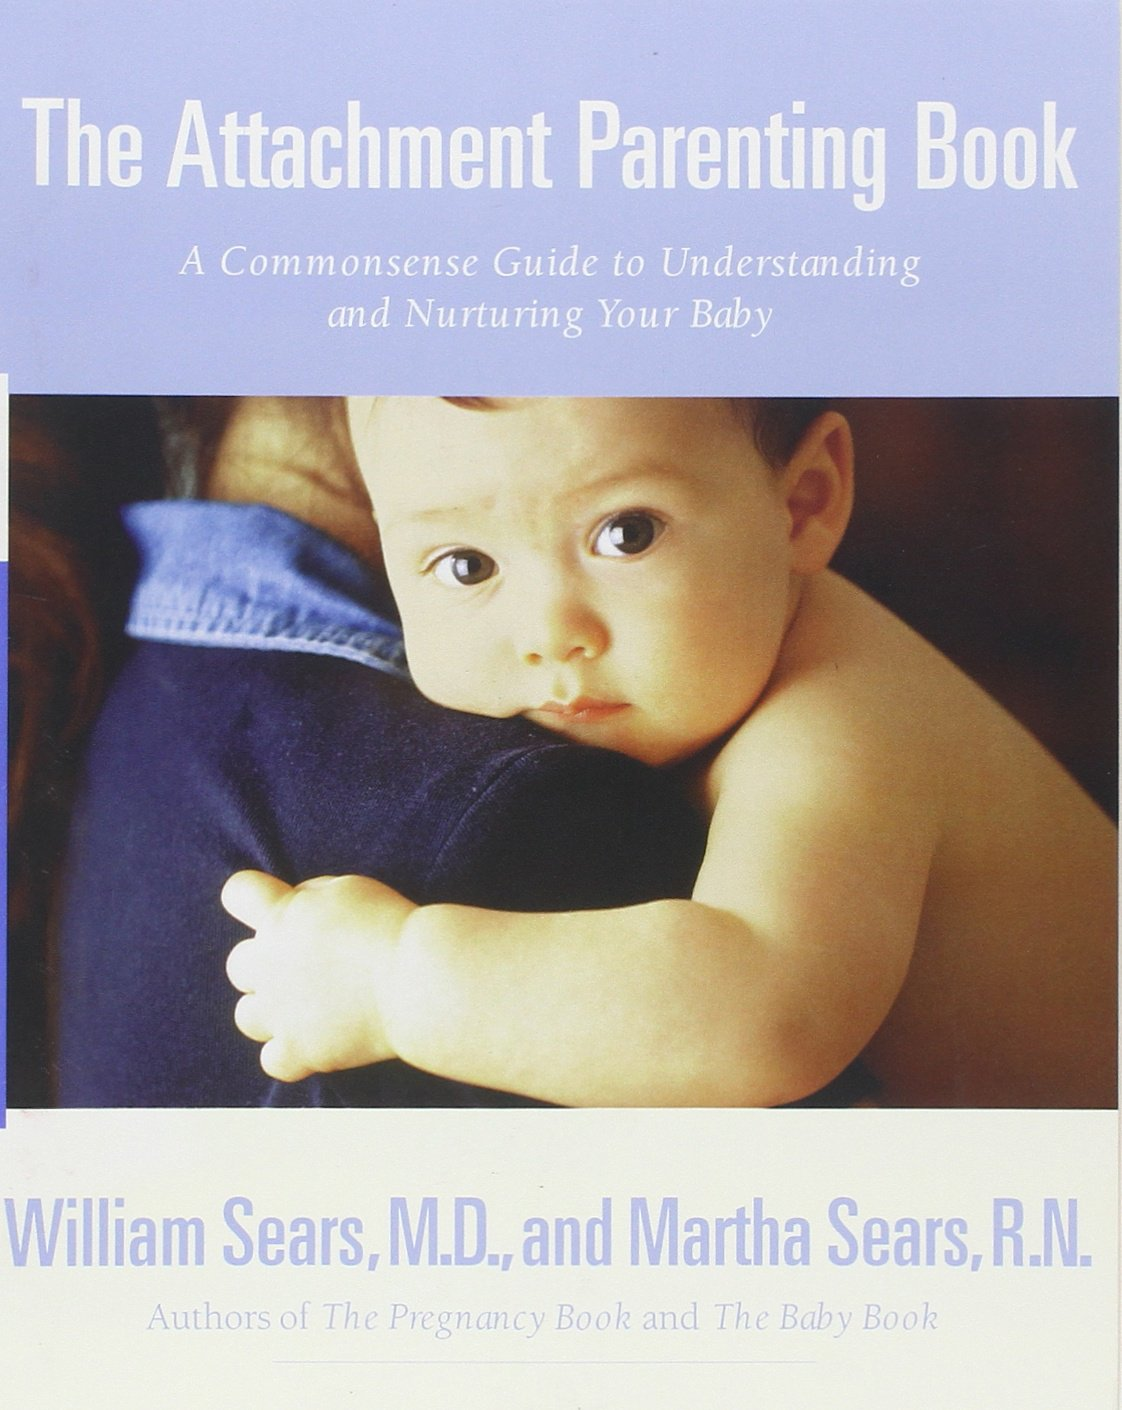 Download The Attachment Parenting Book: A Commonsense Guide to Understanding and Nurturing Your Baby (Sears Parenting Library) PDF